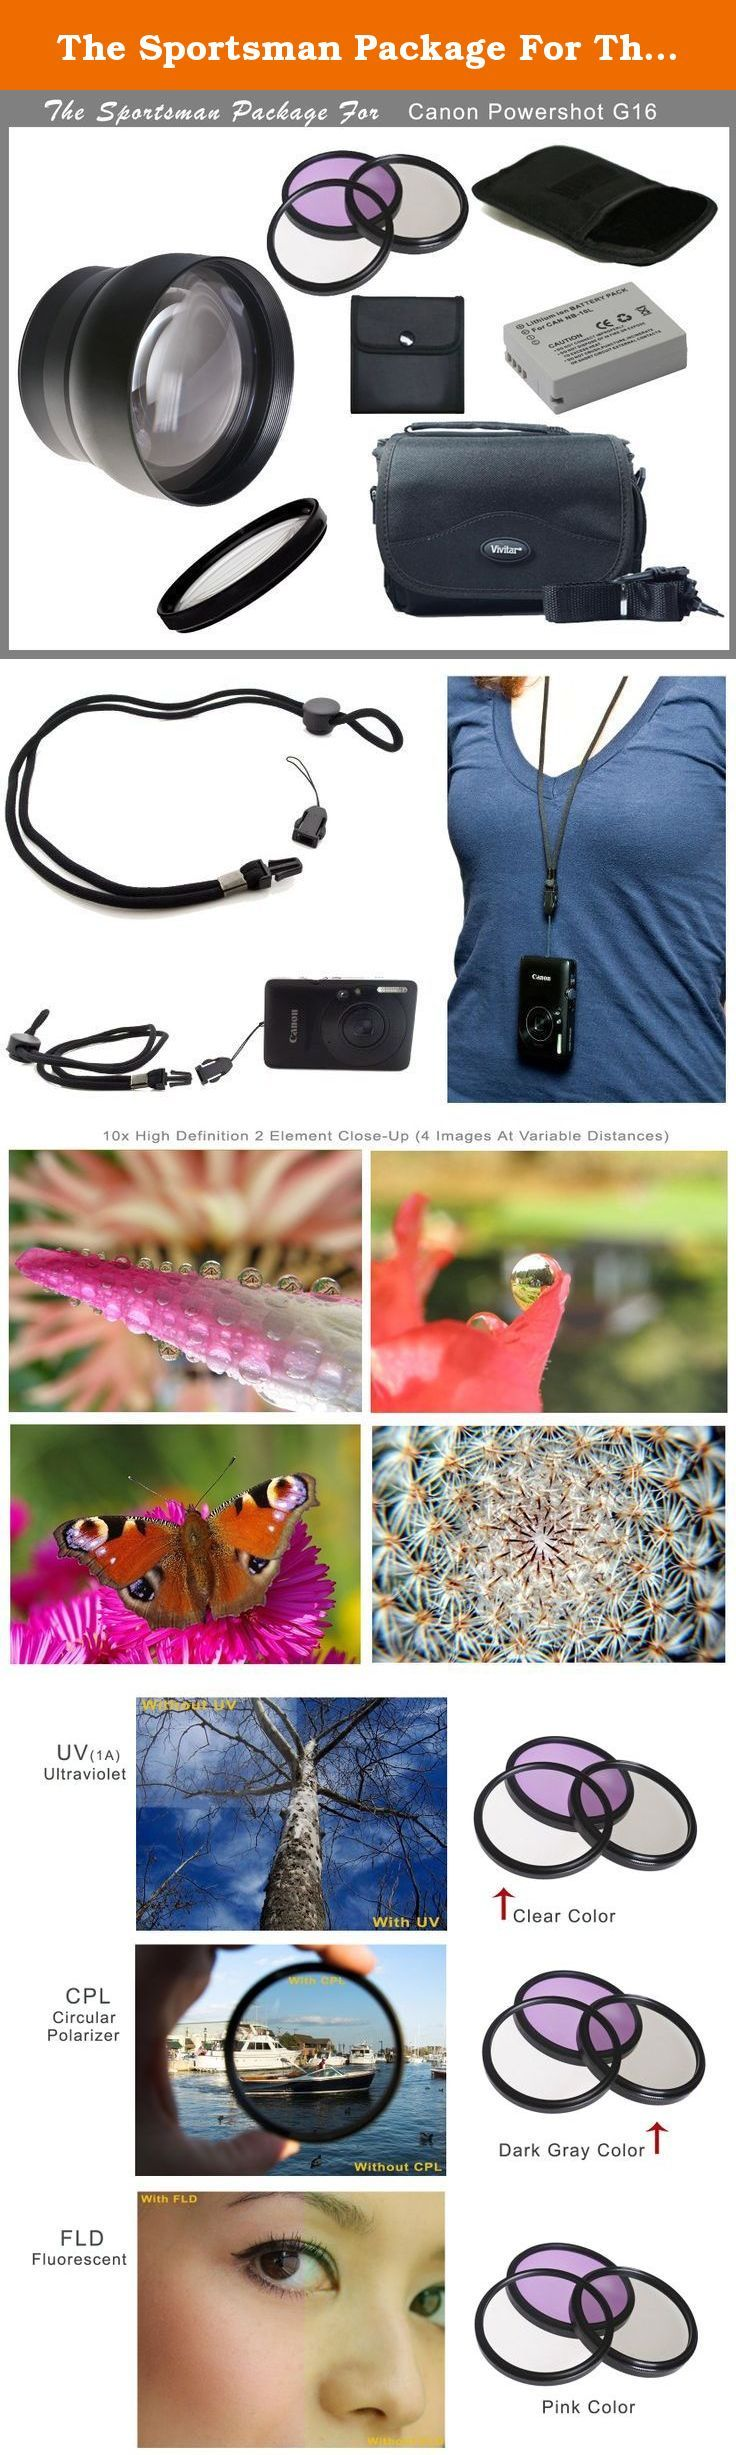 The Sportsman Package For The Canon Powershot G16. The Sportsman Package: Telephoto Lens (2.2x) For Canon G16 (58mm) 3 Piece Lens Filter Set (HD) Includes UV, Circular Polarizer, Fluorescent. (Filters: Multi-threaded & Multi-Coated (58mm) 10x High Definition 2 Element Close-Up (Macro) Lens (58mm) w/ Padded Pouch High Capacity Rechargeable Lithium Ion Battery Camera Case Mult-Adapt Neck Strap Required Lens Adapter (Not Pictured) Camera NOT Inluded .